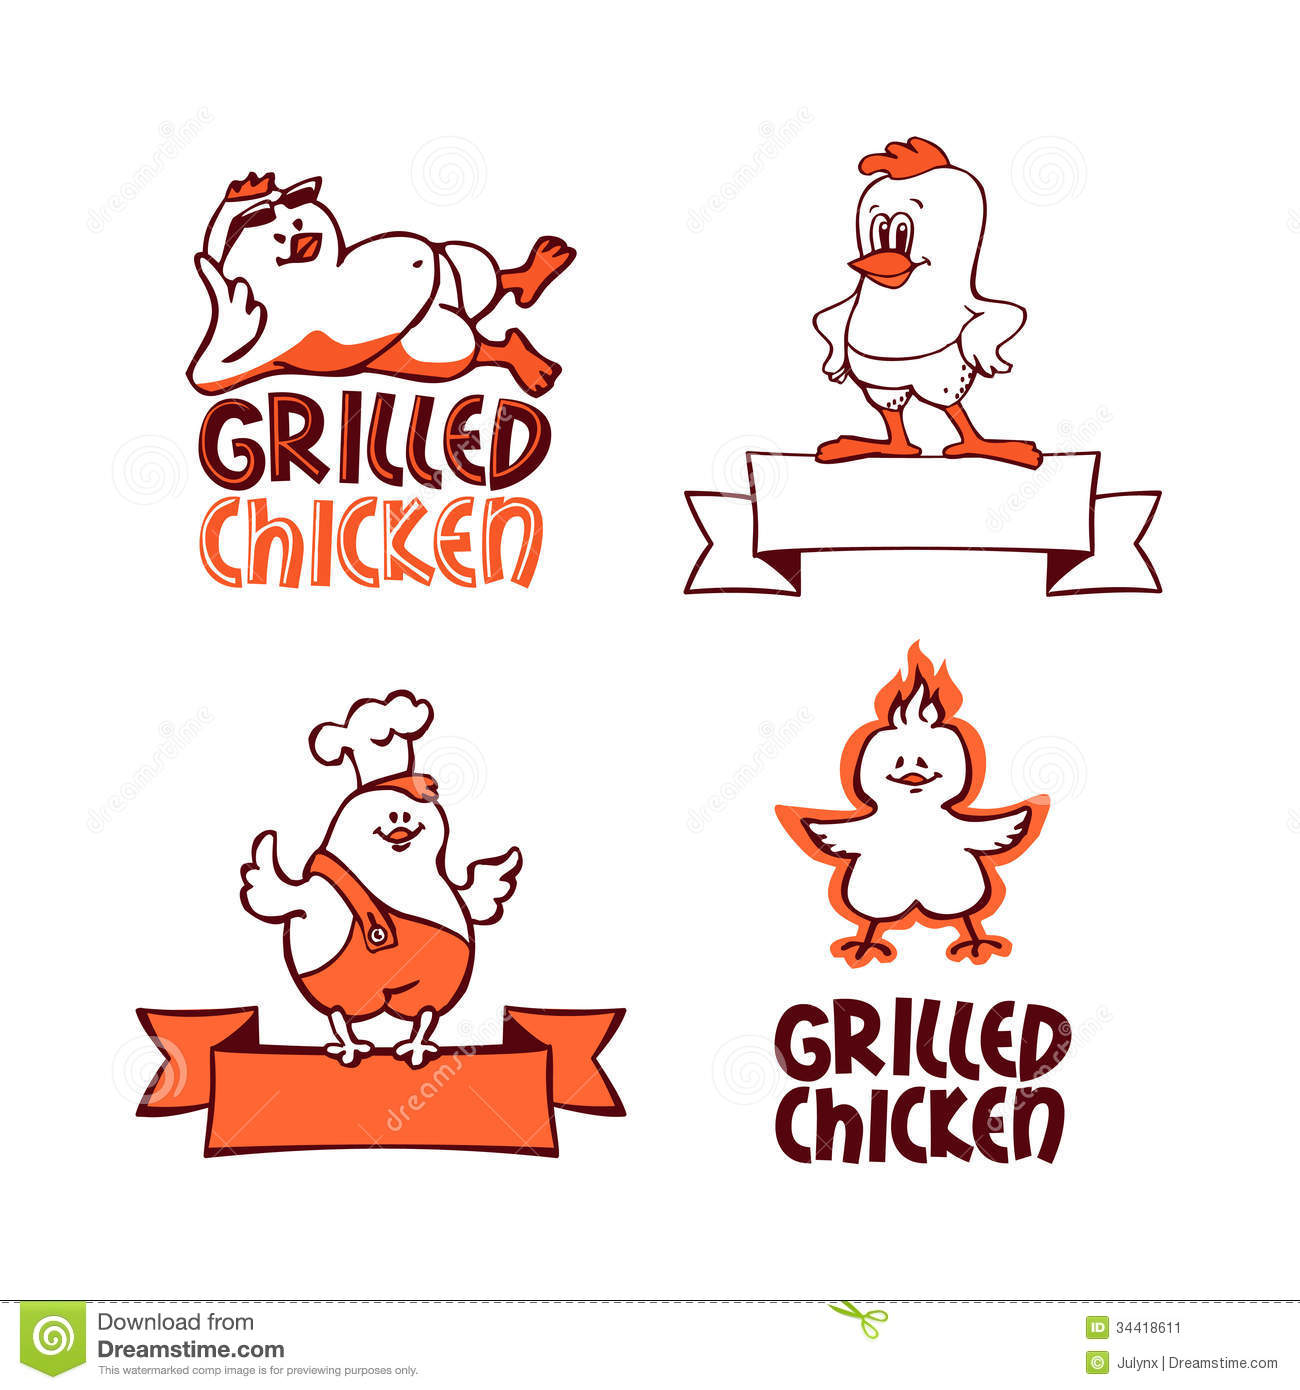 Chicken food logo - photo#10